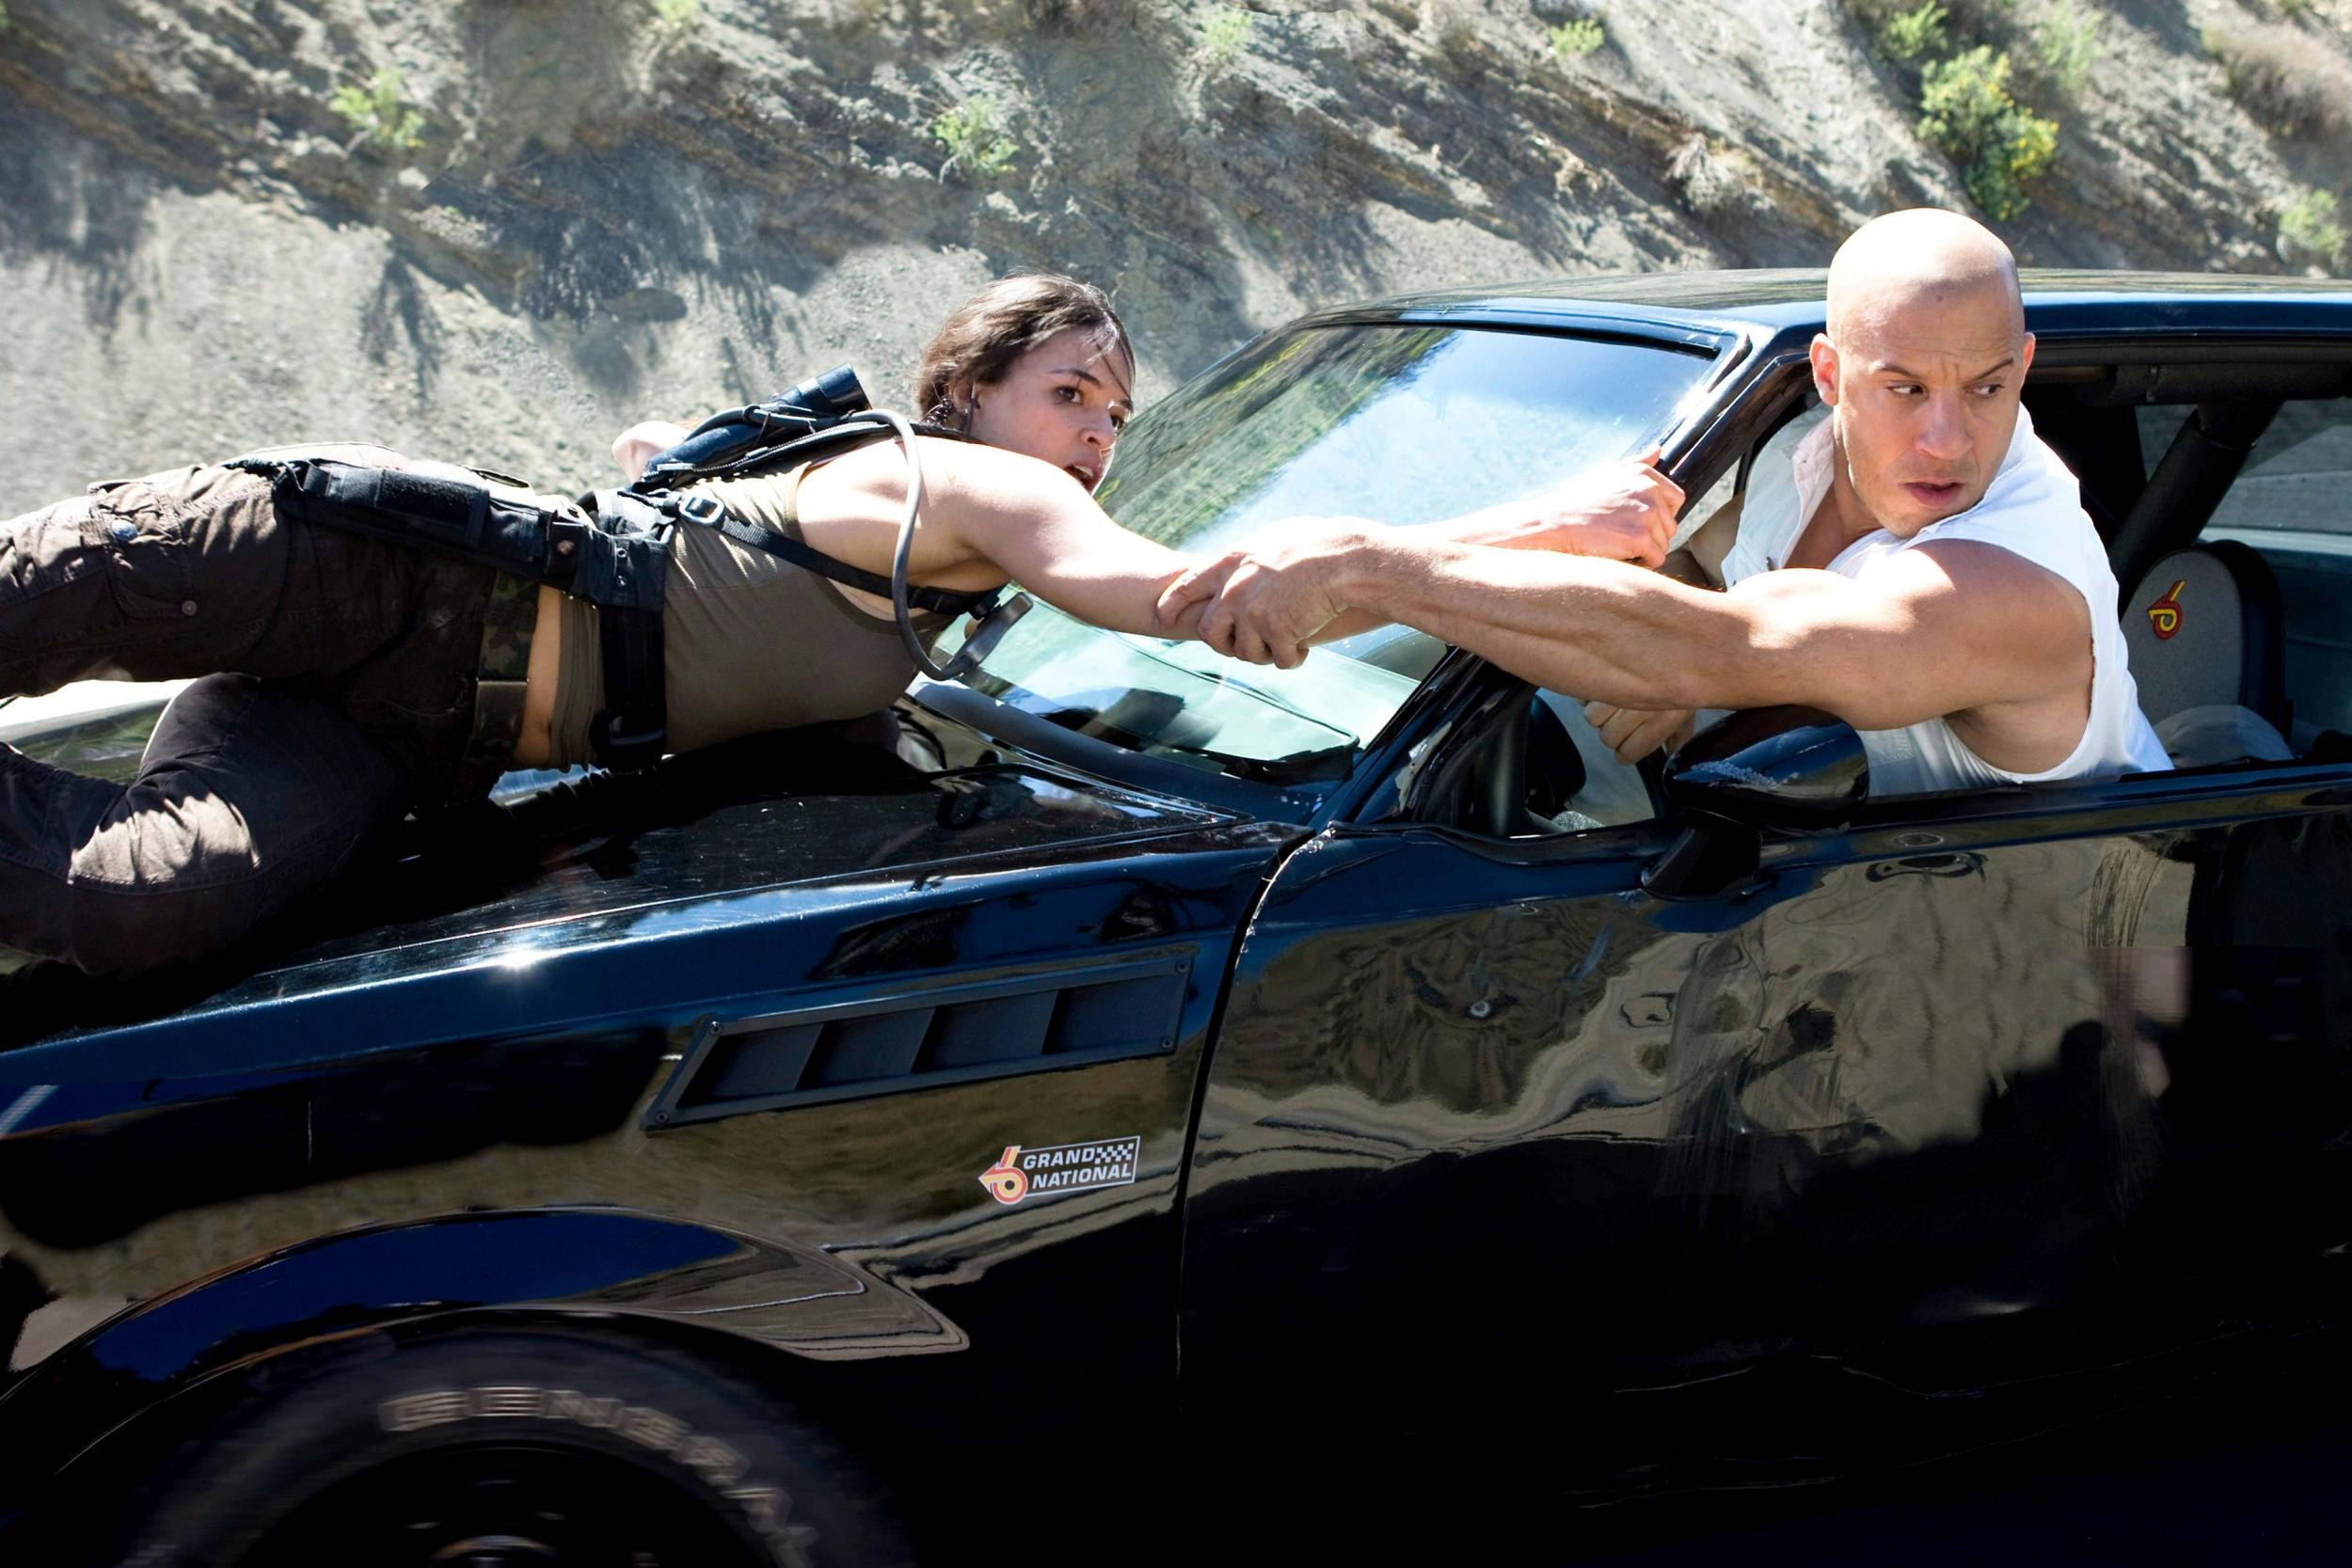 Fast Furious 9 And 10 Get Release Dates Up To 2021 The Independent The Independent